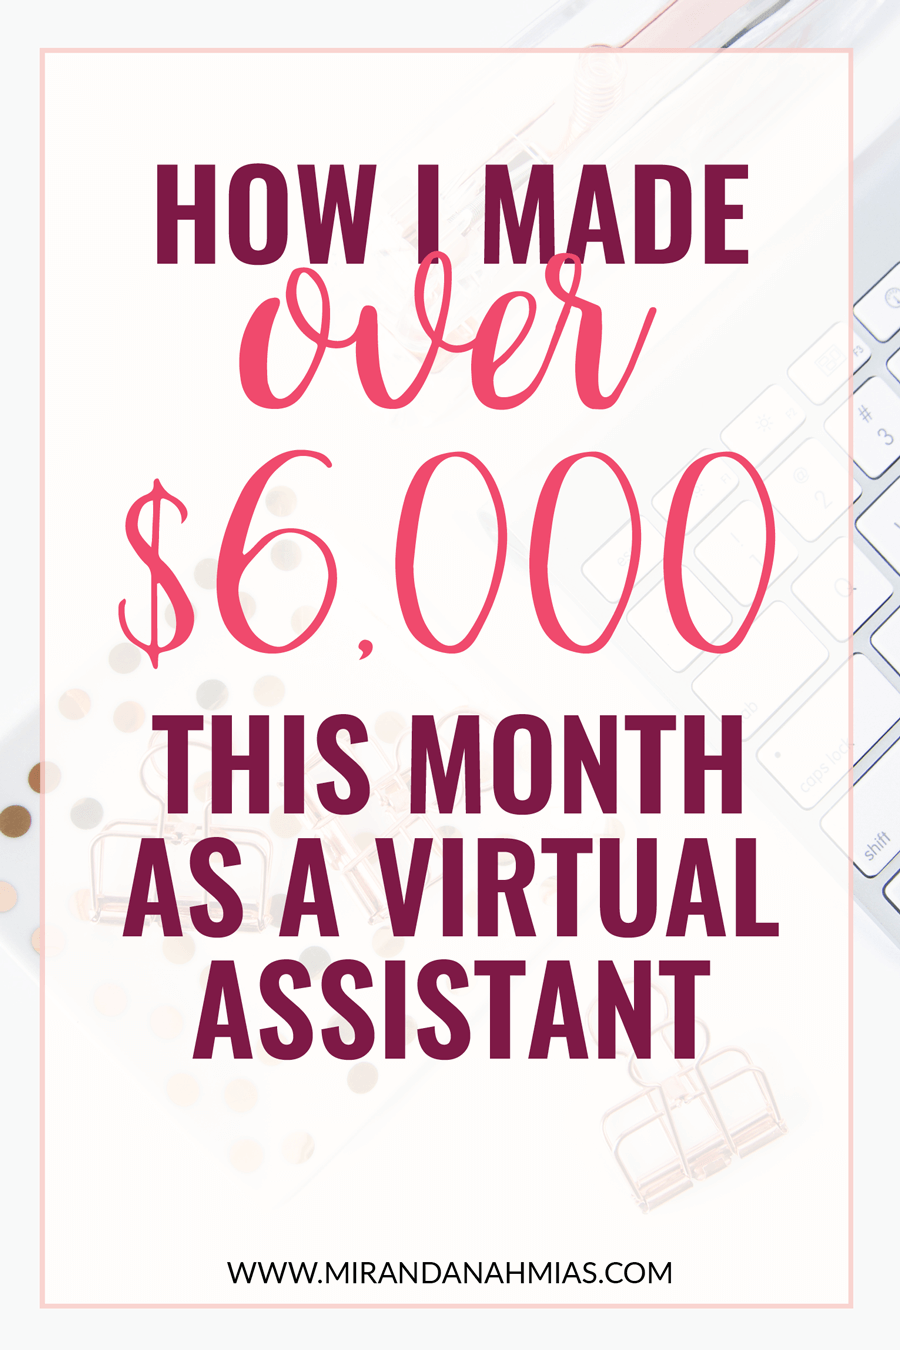 How I Made Over $6k This Month as a Virtual Assistant. I detail my income and expenses for January 2017 // Miranda Nahmias